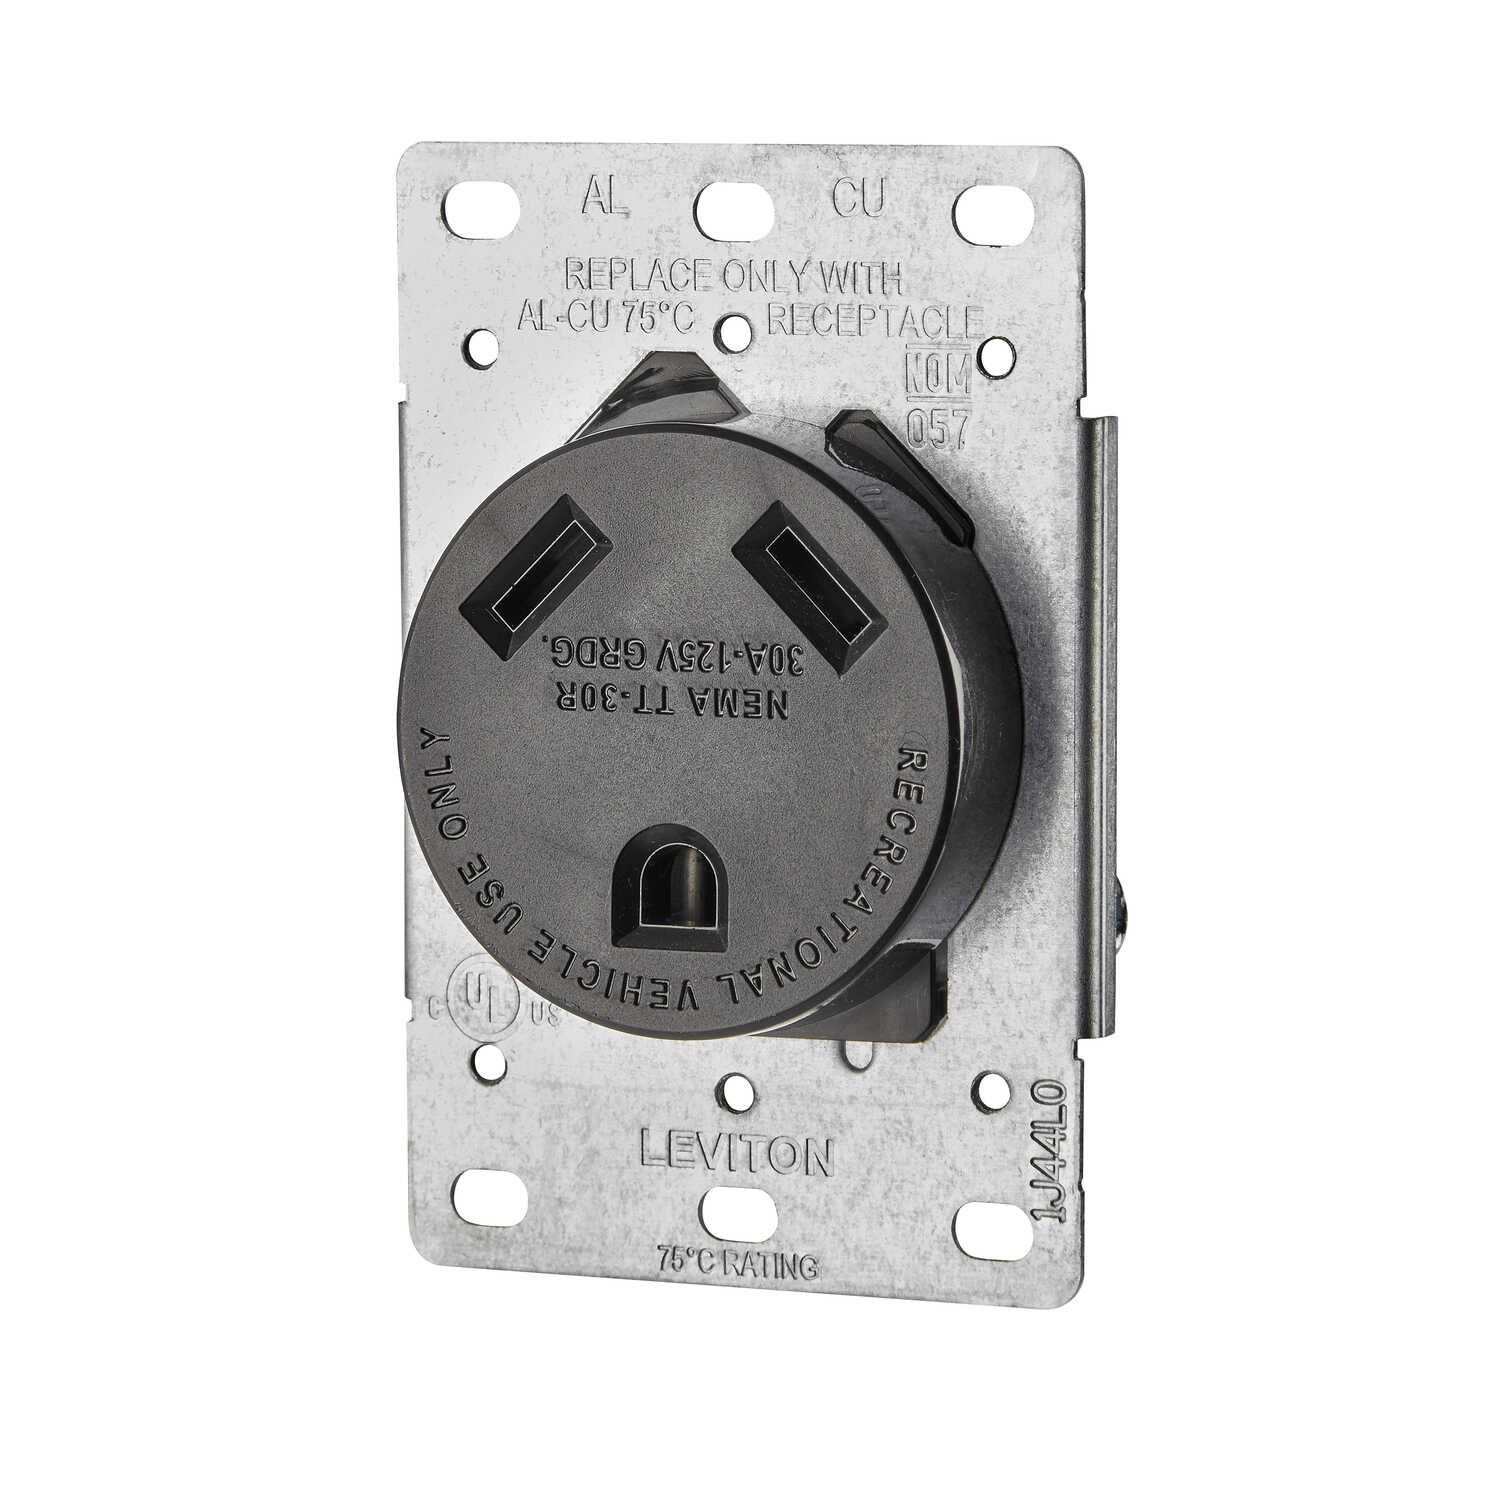 Leviton  30 amps 125 volt Black  Outlet  TT-30R  1 pk